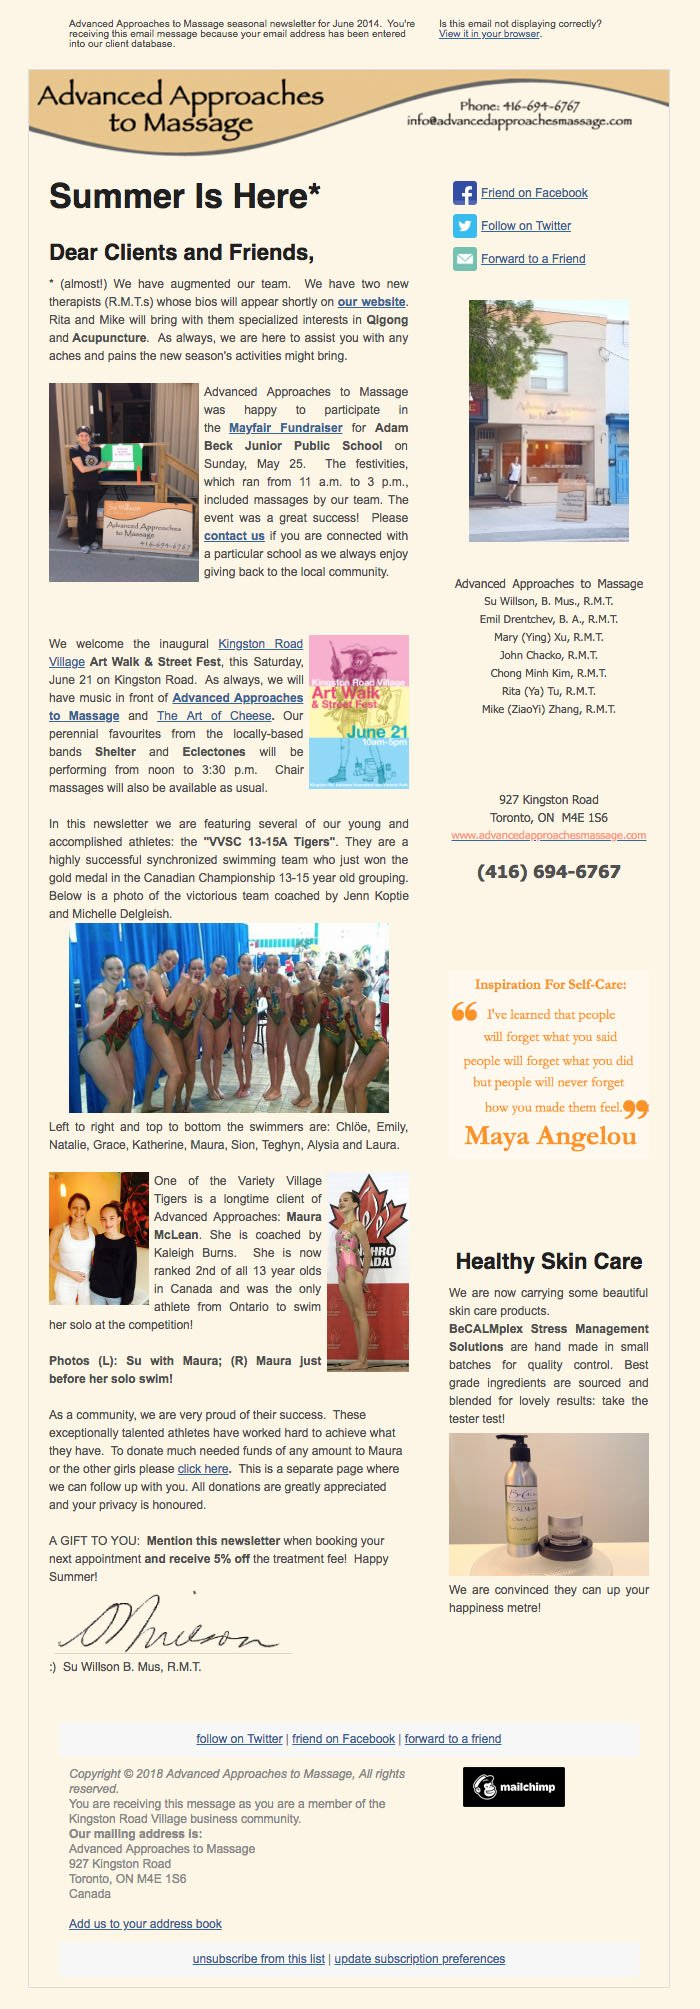 Newsletter-2014-06-16-Summer-14